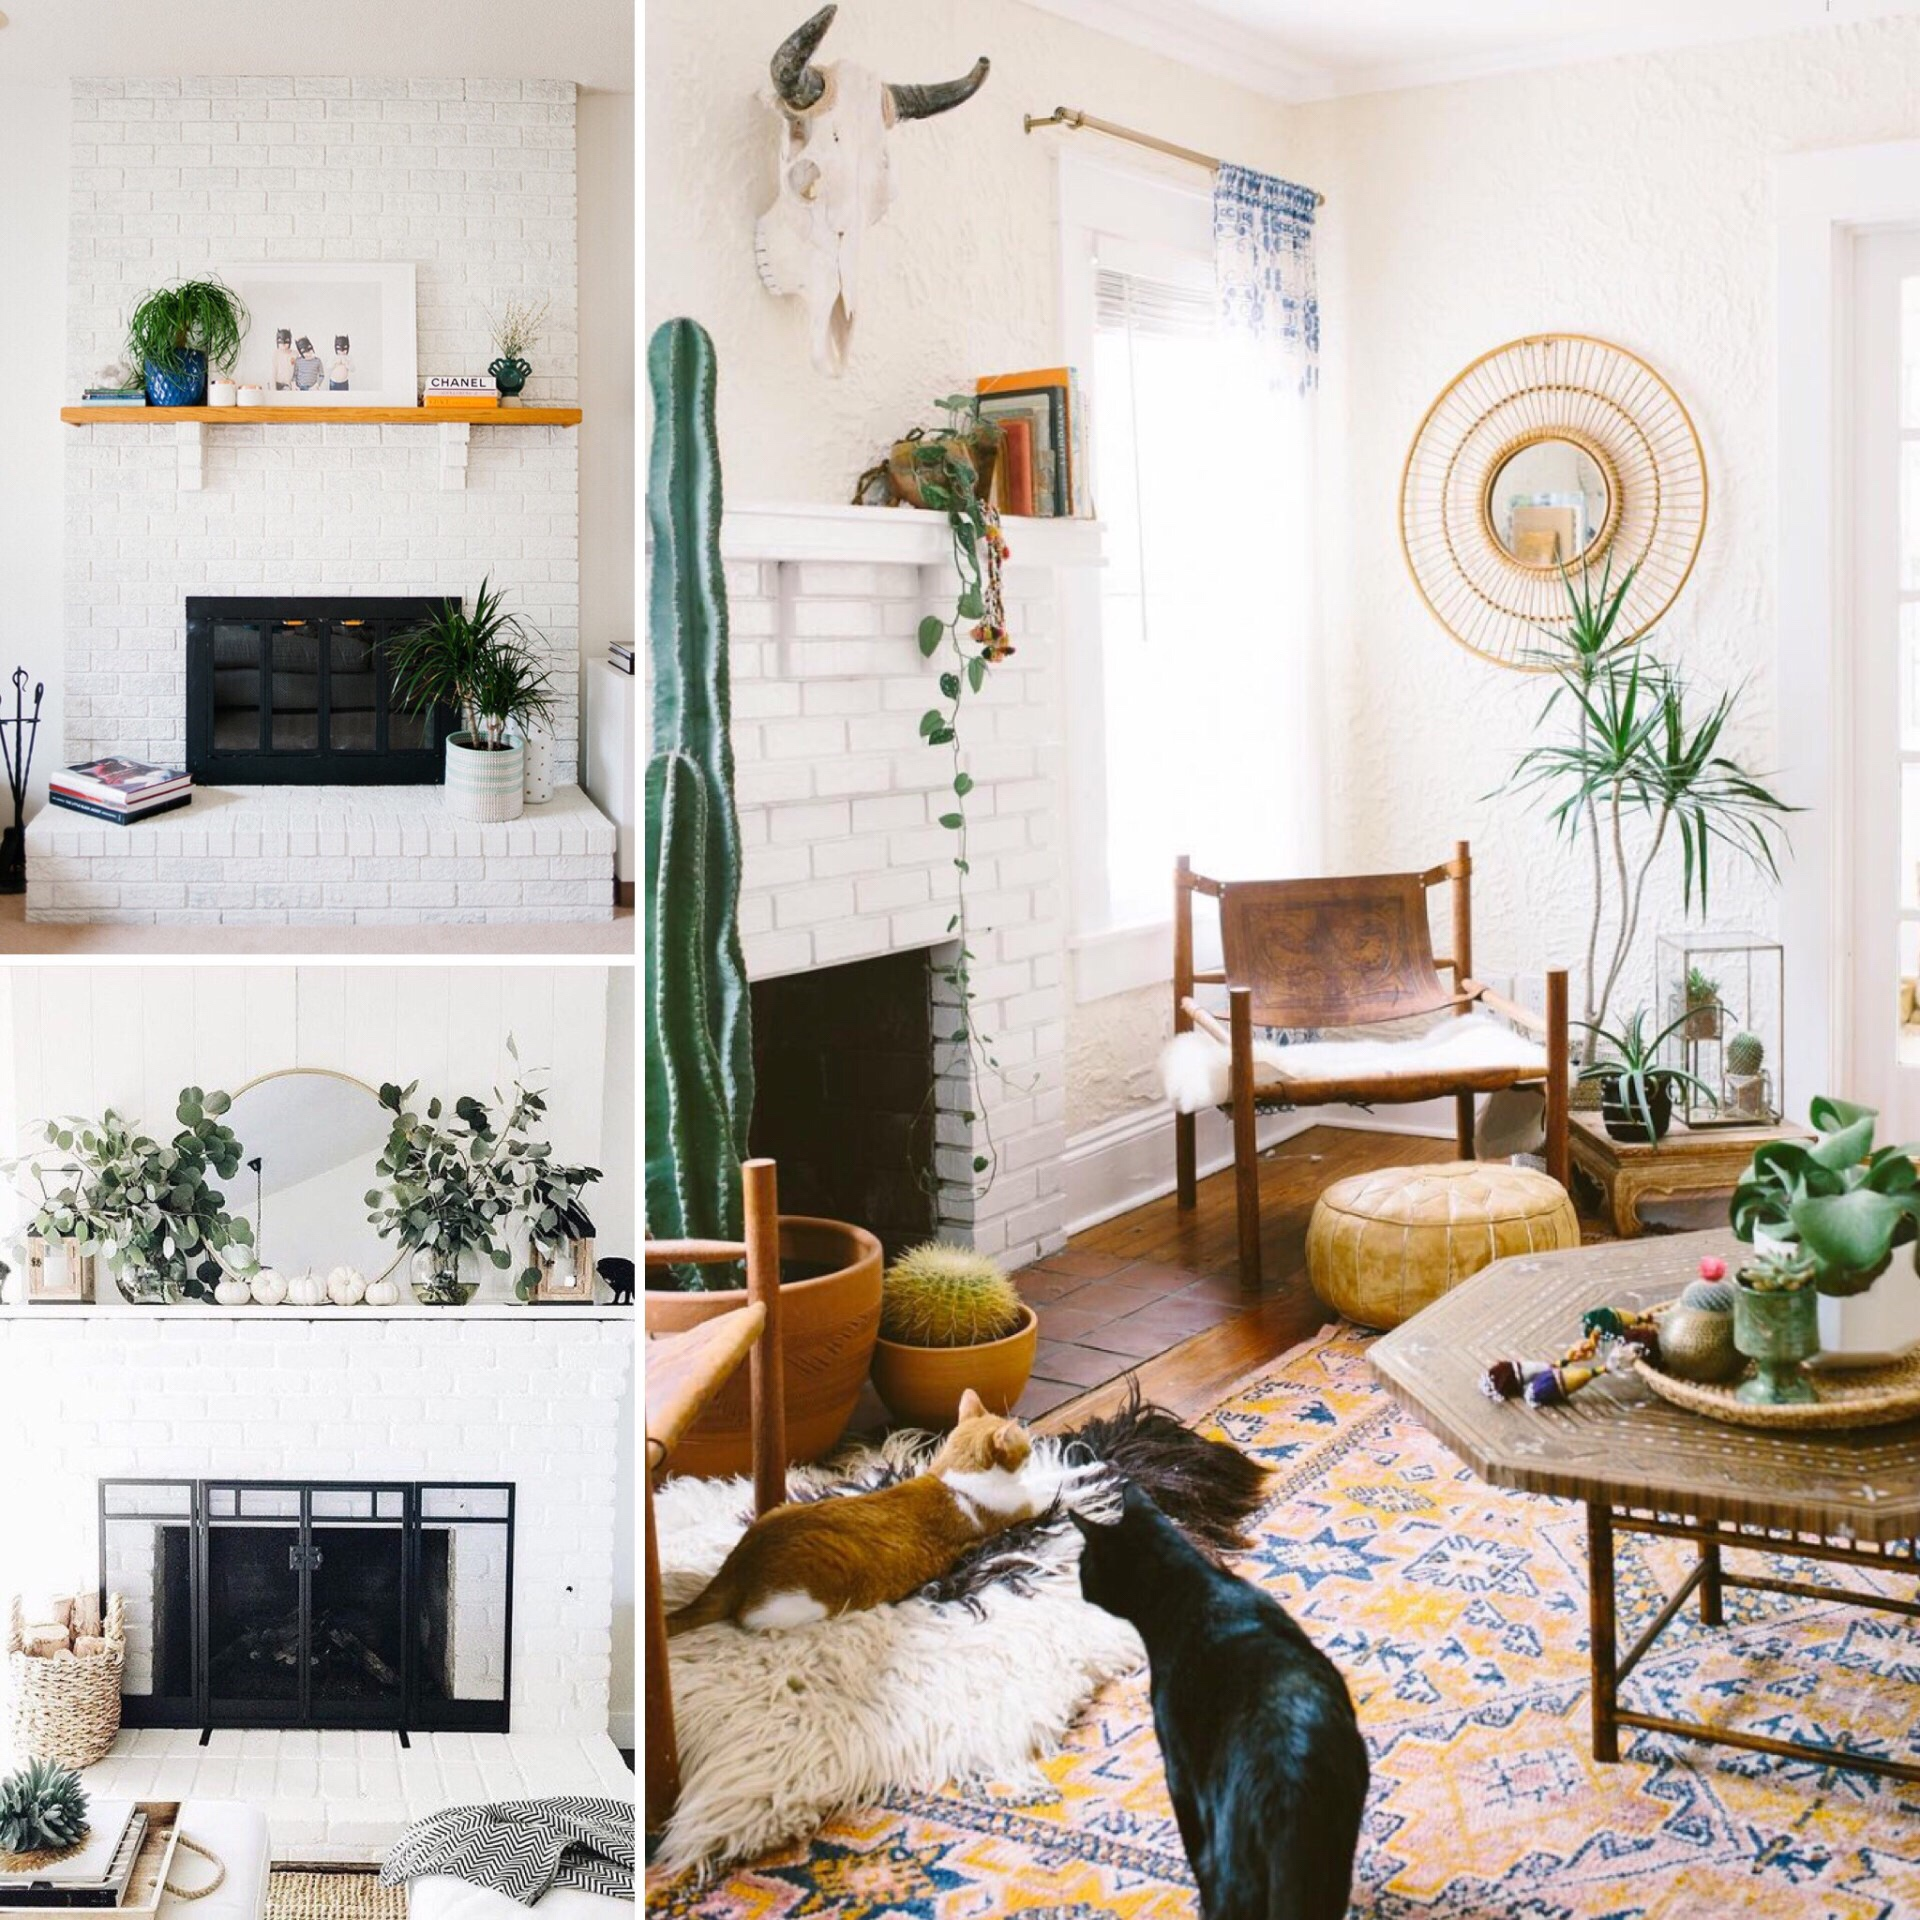 Fireplace moodboard - The BuNGALOW Edit